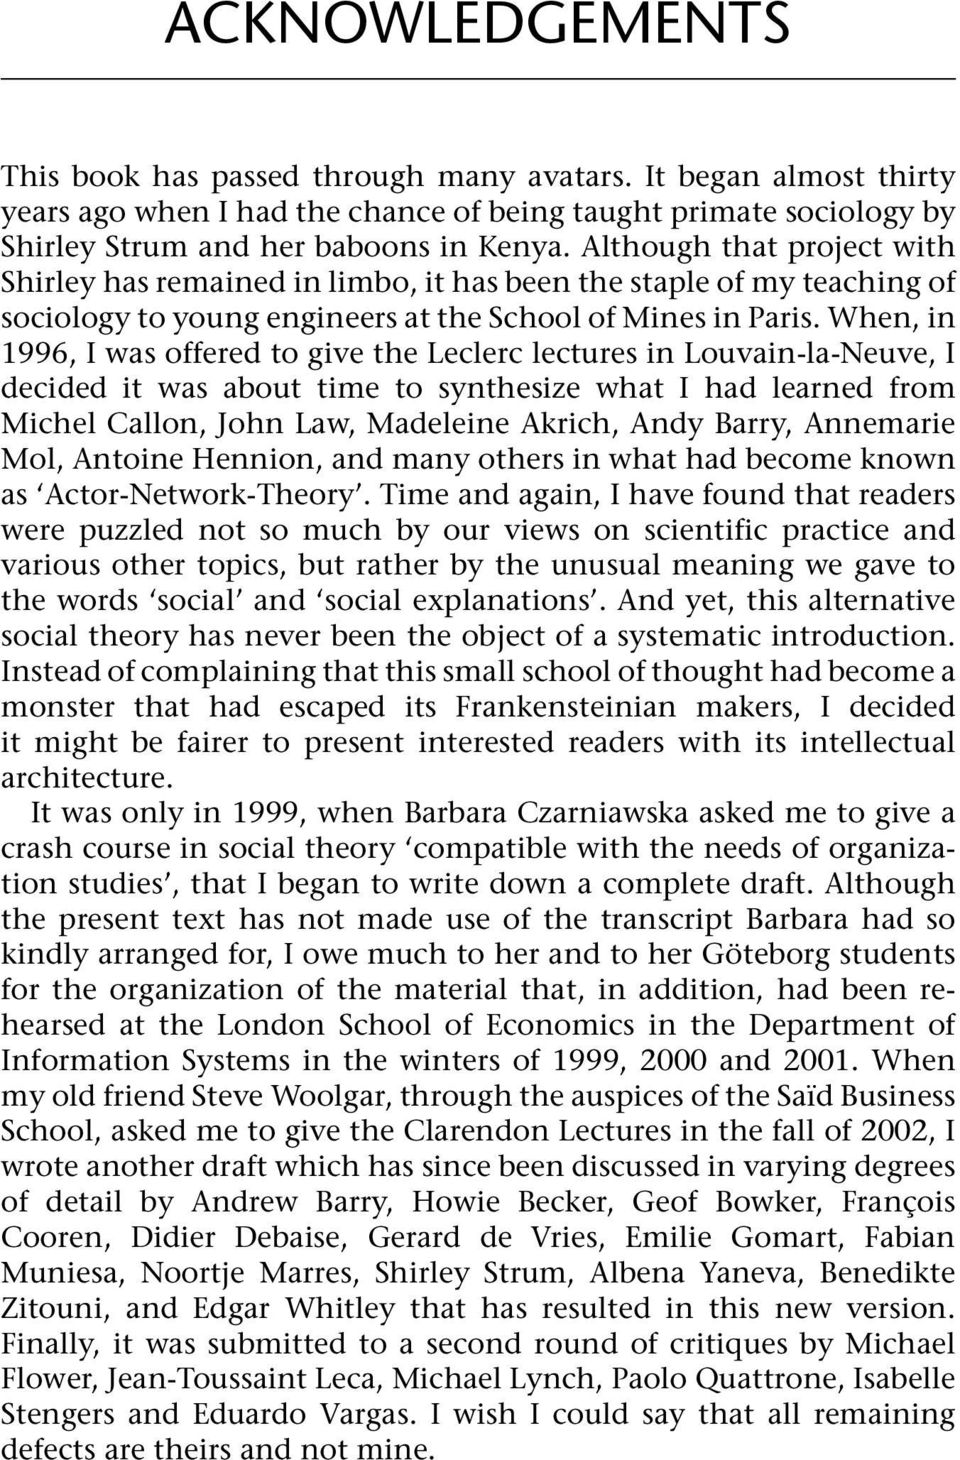 When, in 1996, I was offered to give the Leclerc lectures in Louvain-la-Neuve, I decided it was about time to synthesize what I had learned from Michel Callon, John Law, Madeleine Akrich, Andy Barry,